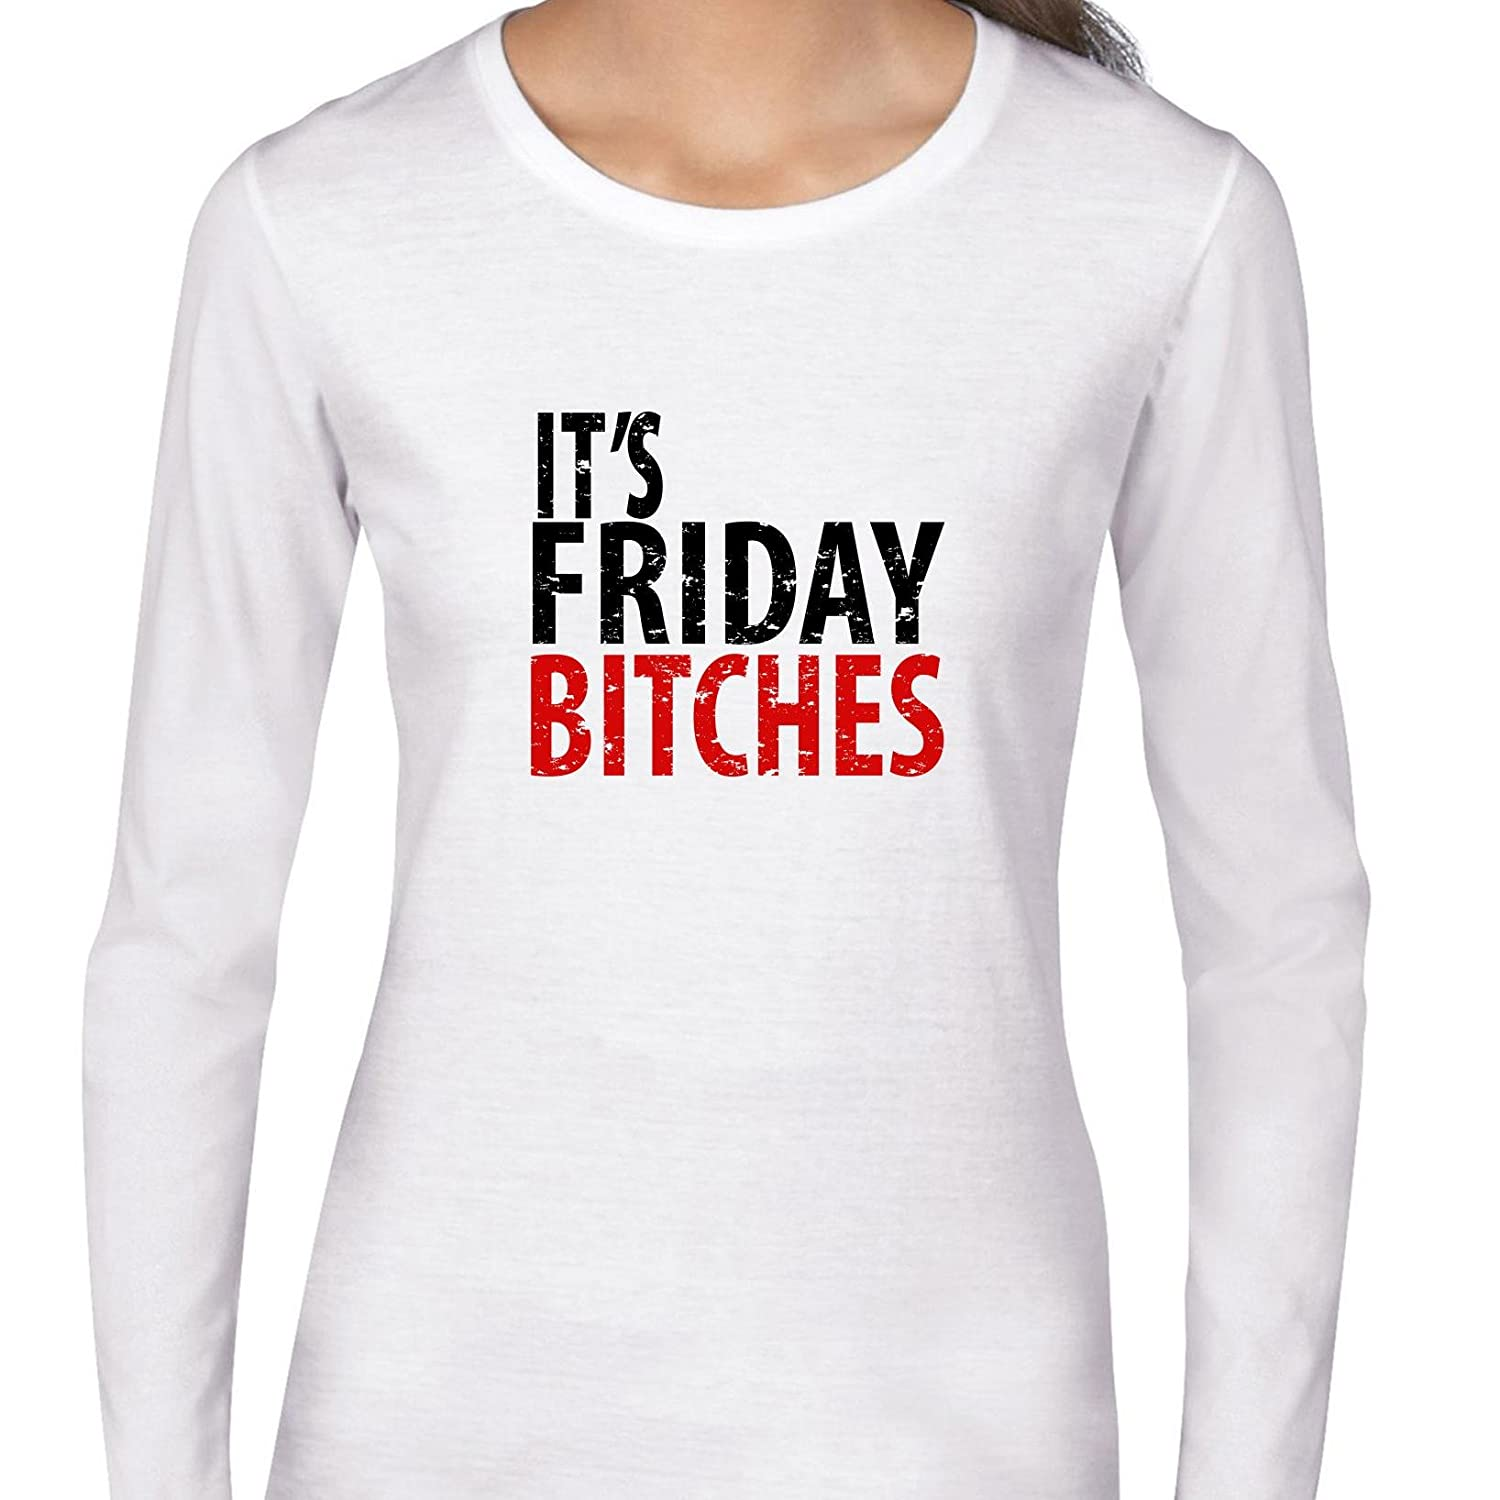 2c3c9b56da1e7e Amazon.com: It's Friday Bitches - Celebrate The Weekend In Red & Black  Women's Long Sleeve T-Shirt: Clothing